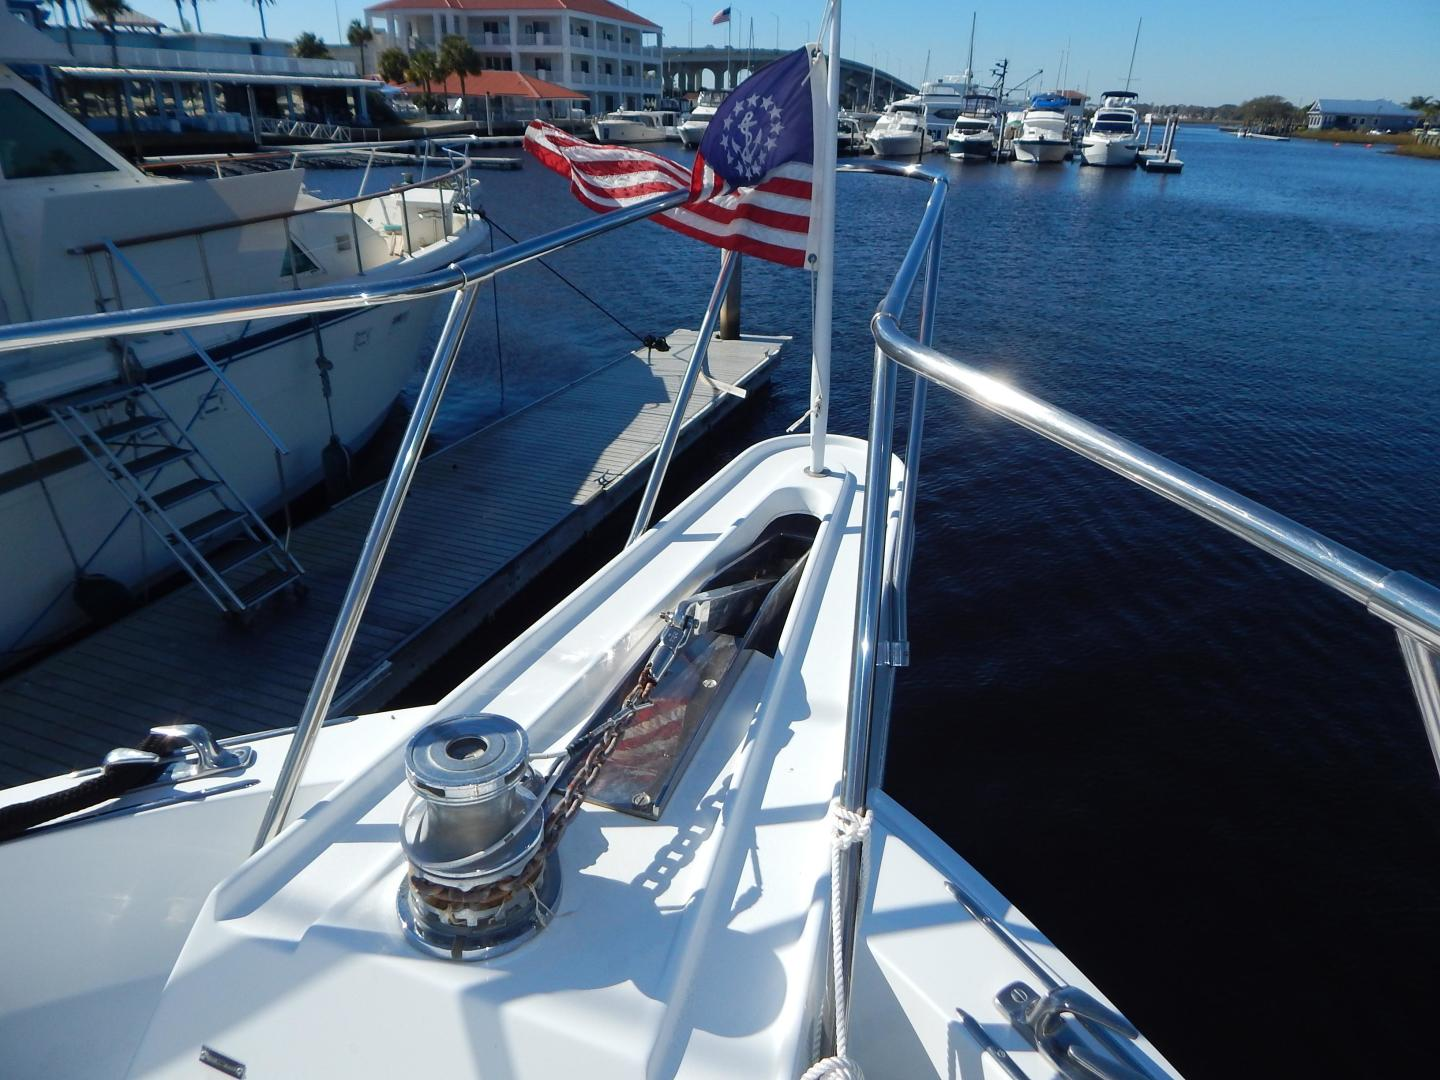 Hatteras-Sport Deck Motor Yacht 1998-I GOT YOU Jacksonville Beach-Florida-United States-1582471 | Thumbnail